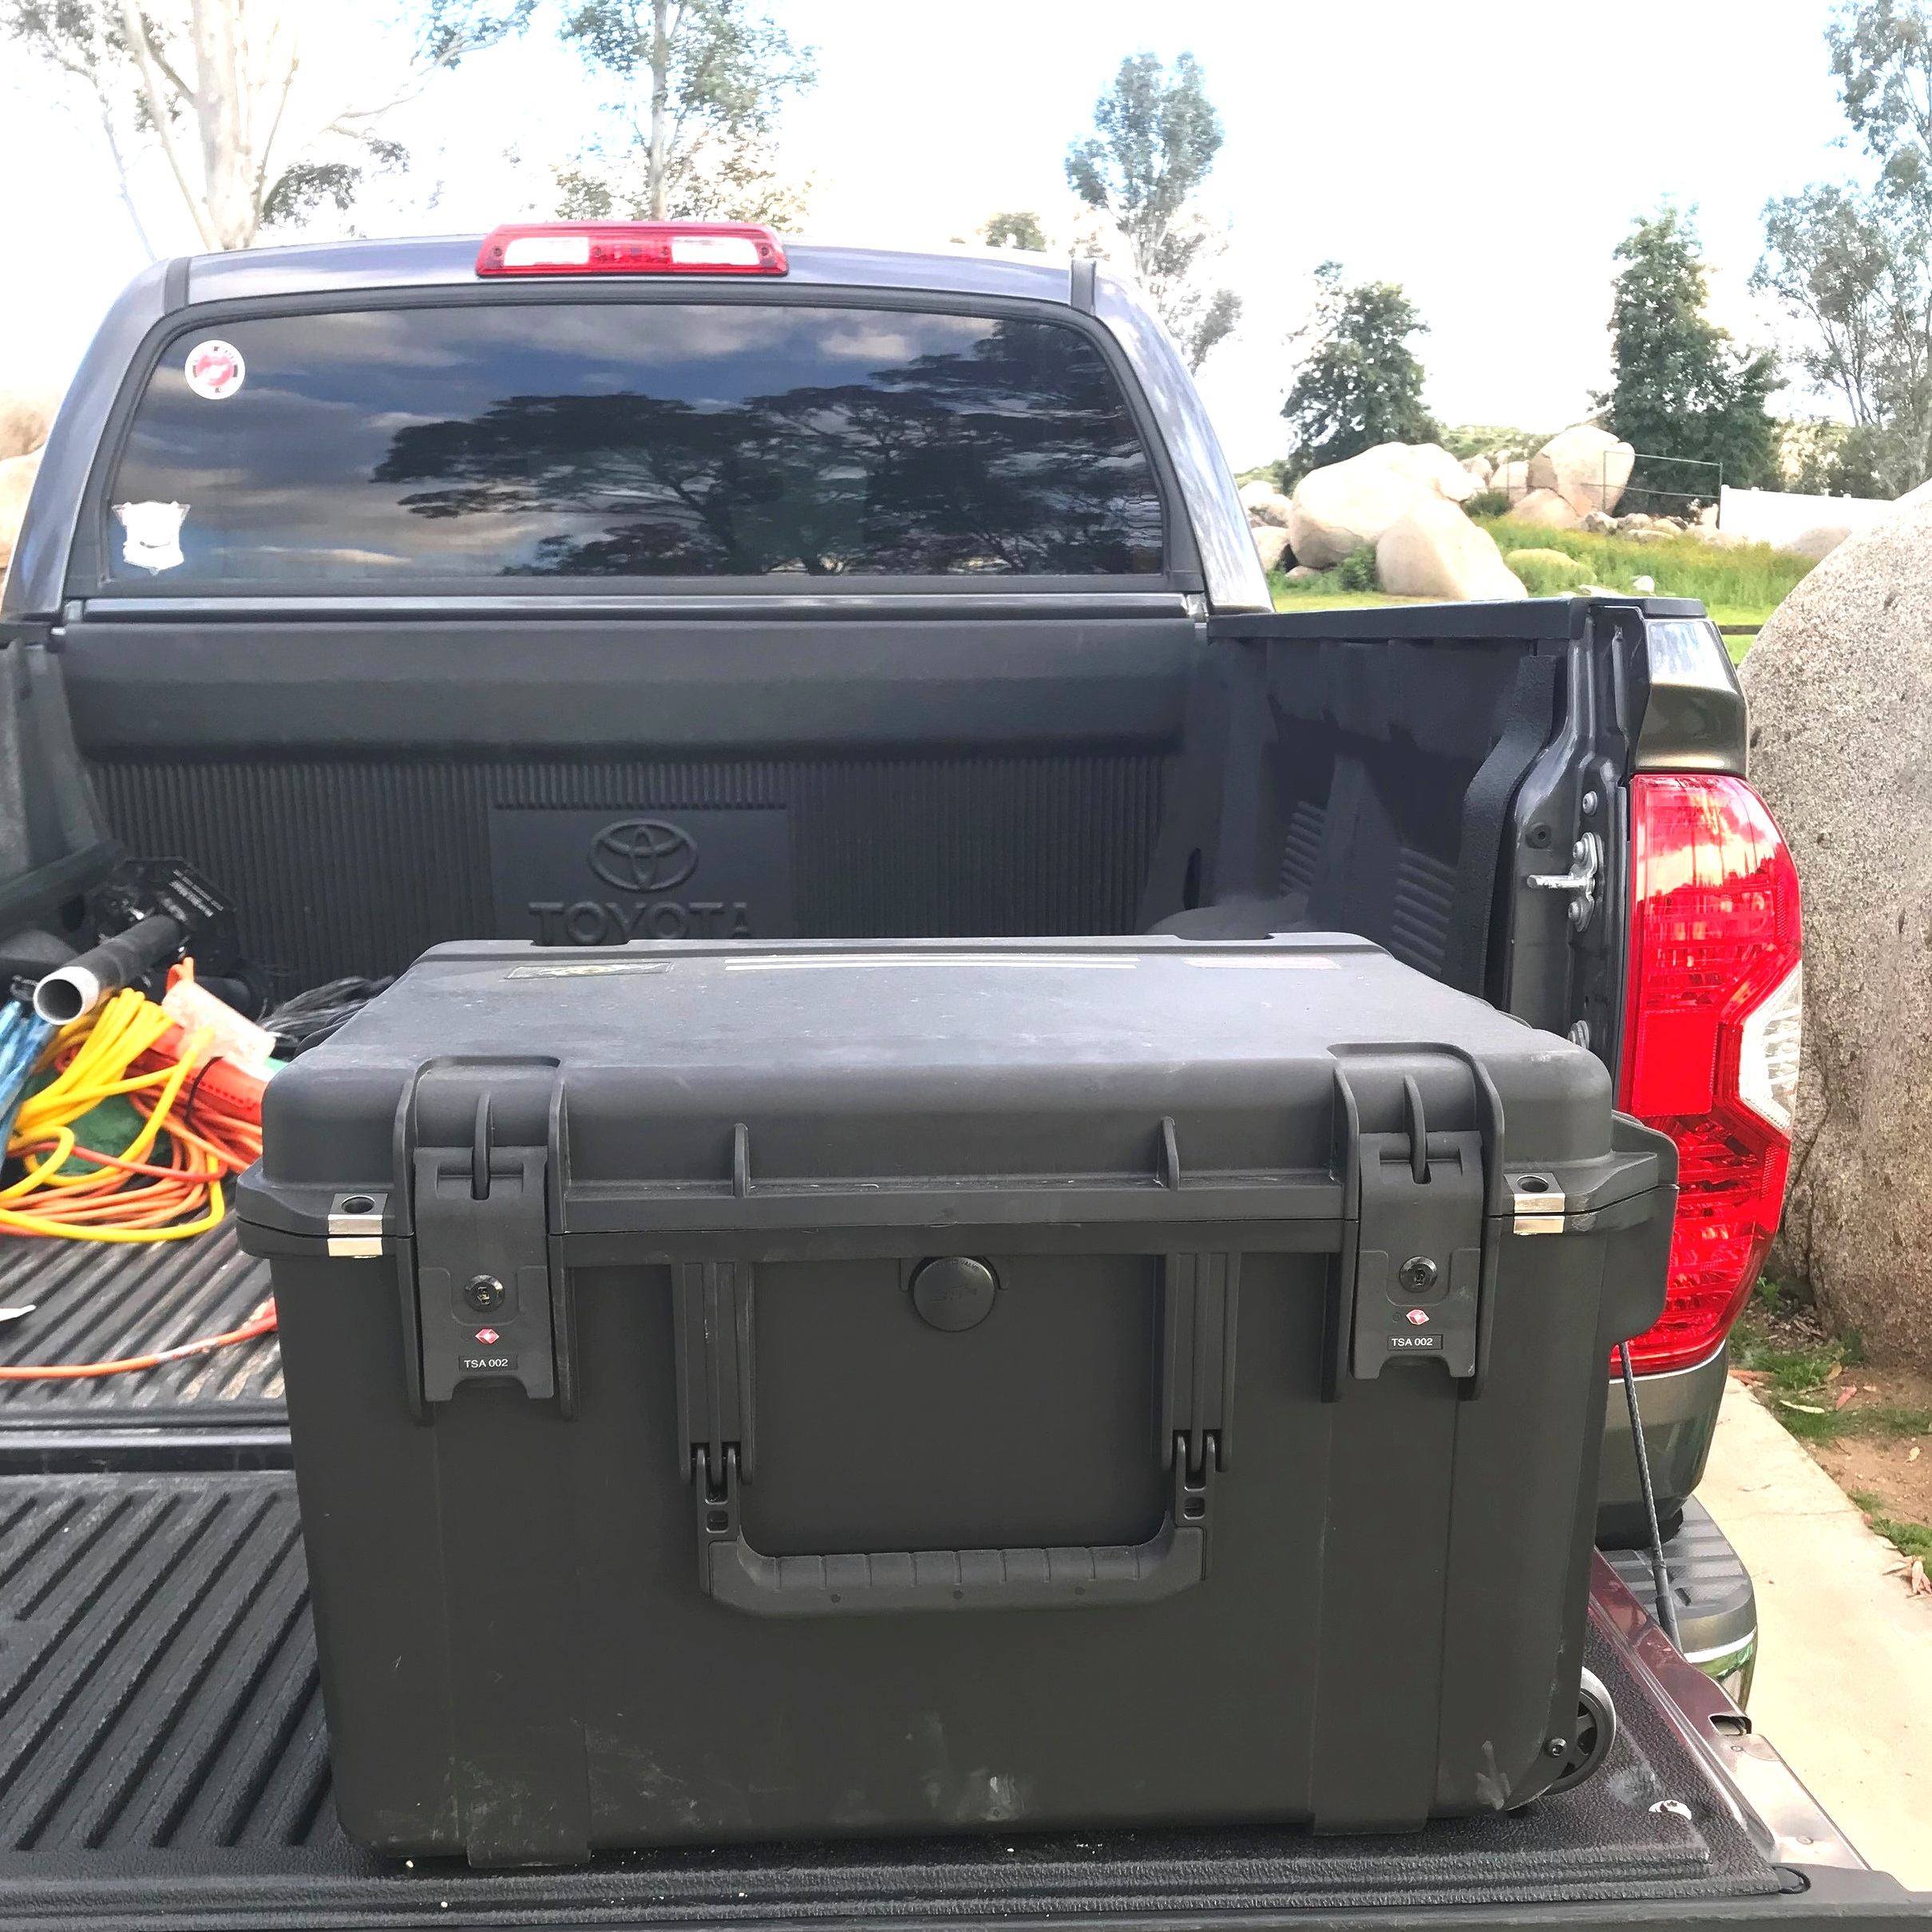 Rack and Carrying Case pic2.jpg